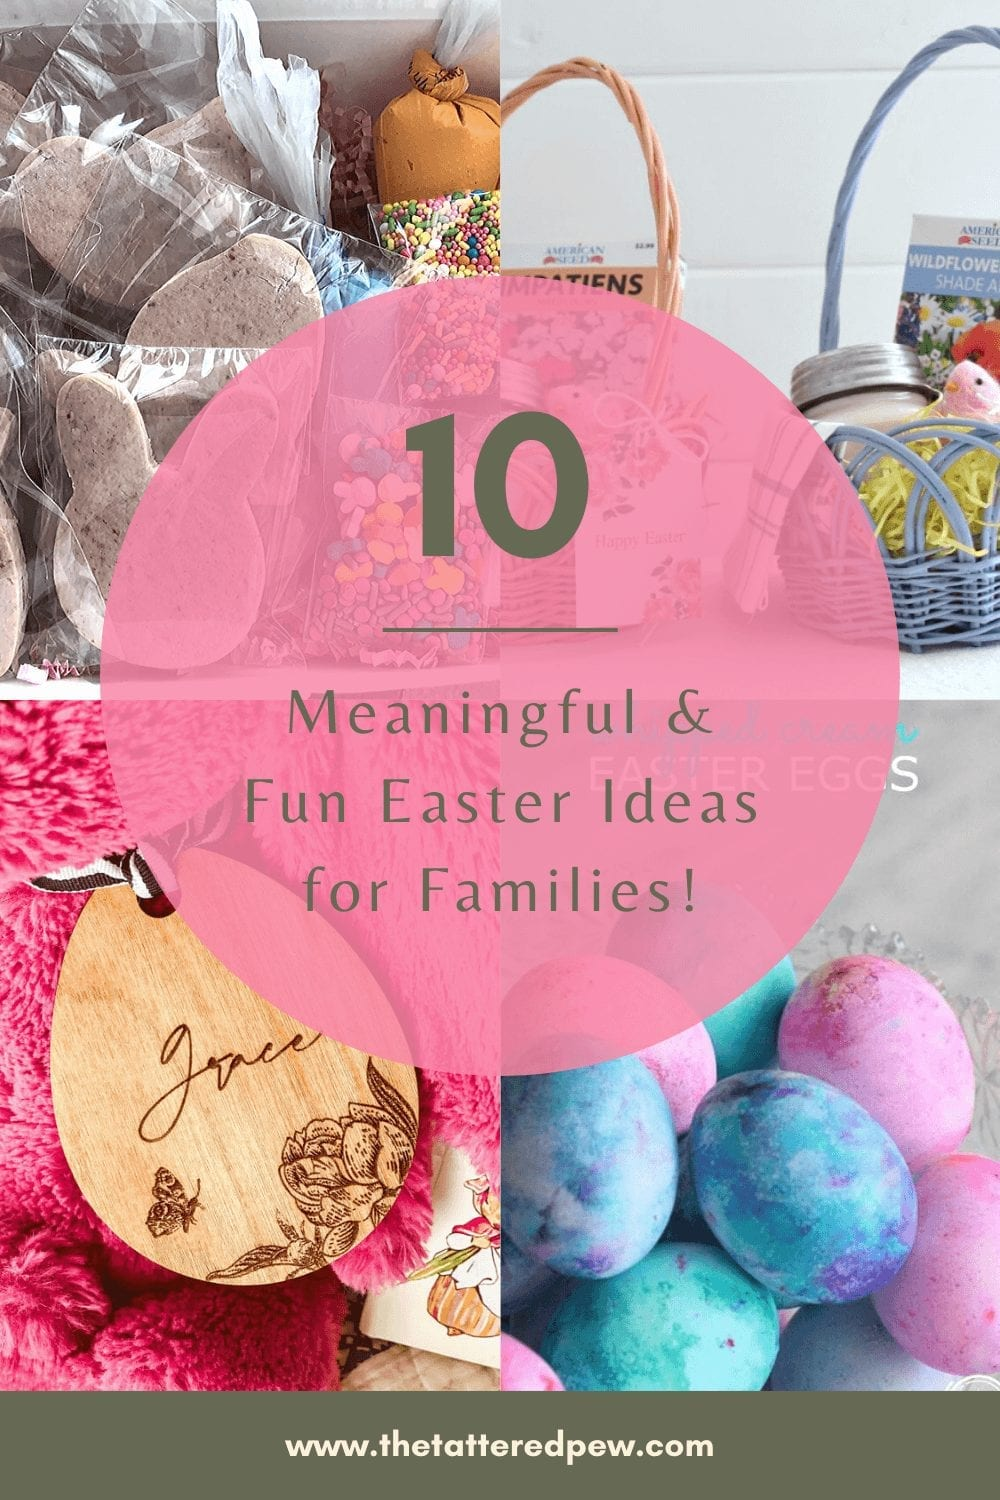 Check out these 10 meaningful and fun Easter ideas for families!